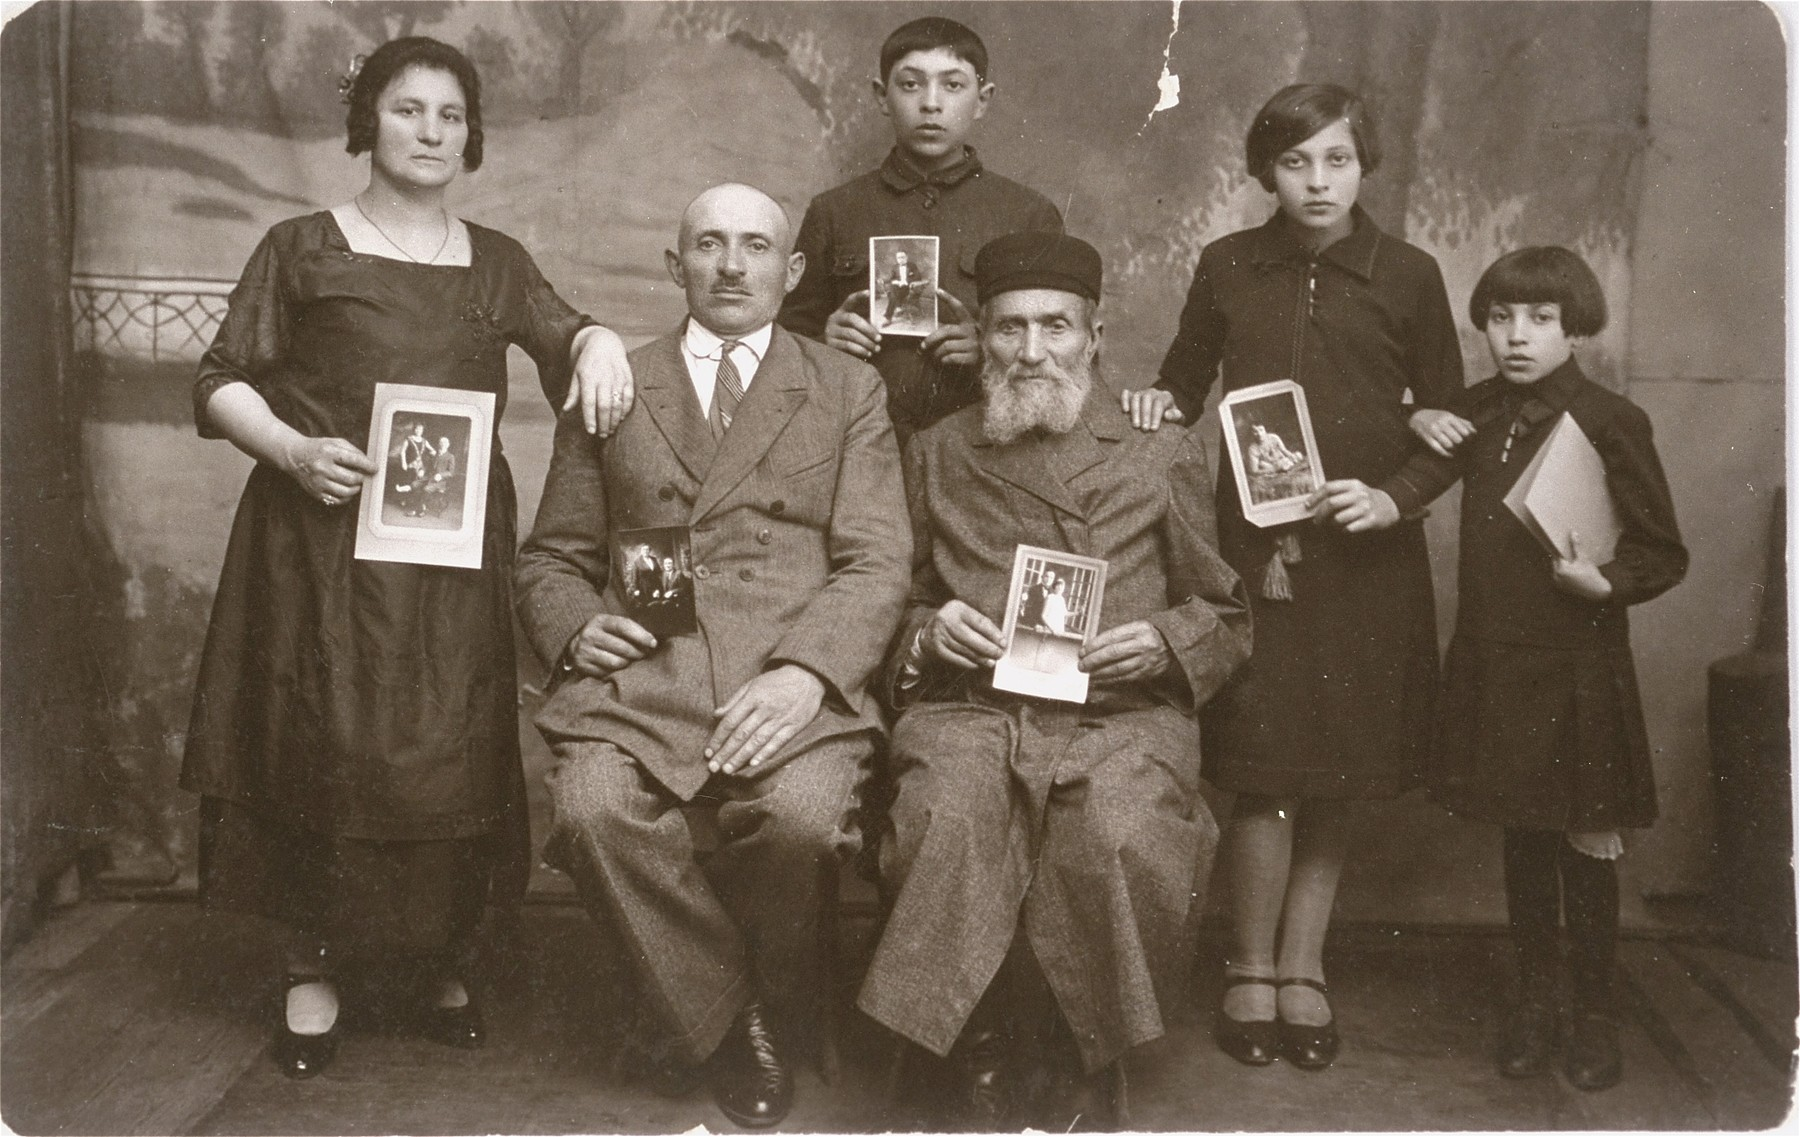 Portrait of Szultz family in Grojec, Poland, holding photographs of their children, some of whom had immigrated to the United States.   Pictured from left to right are Bintcha, Yishmael, Shaul, grandfather Szultz, Rochelle and Esther Szultz.